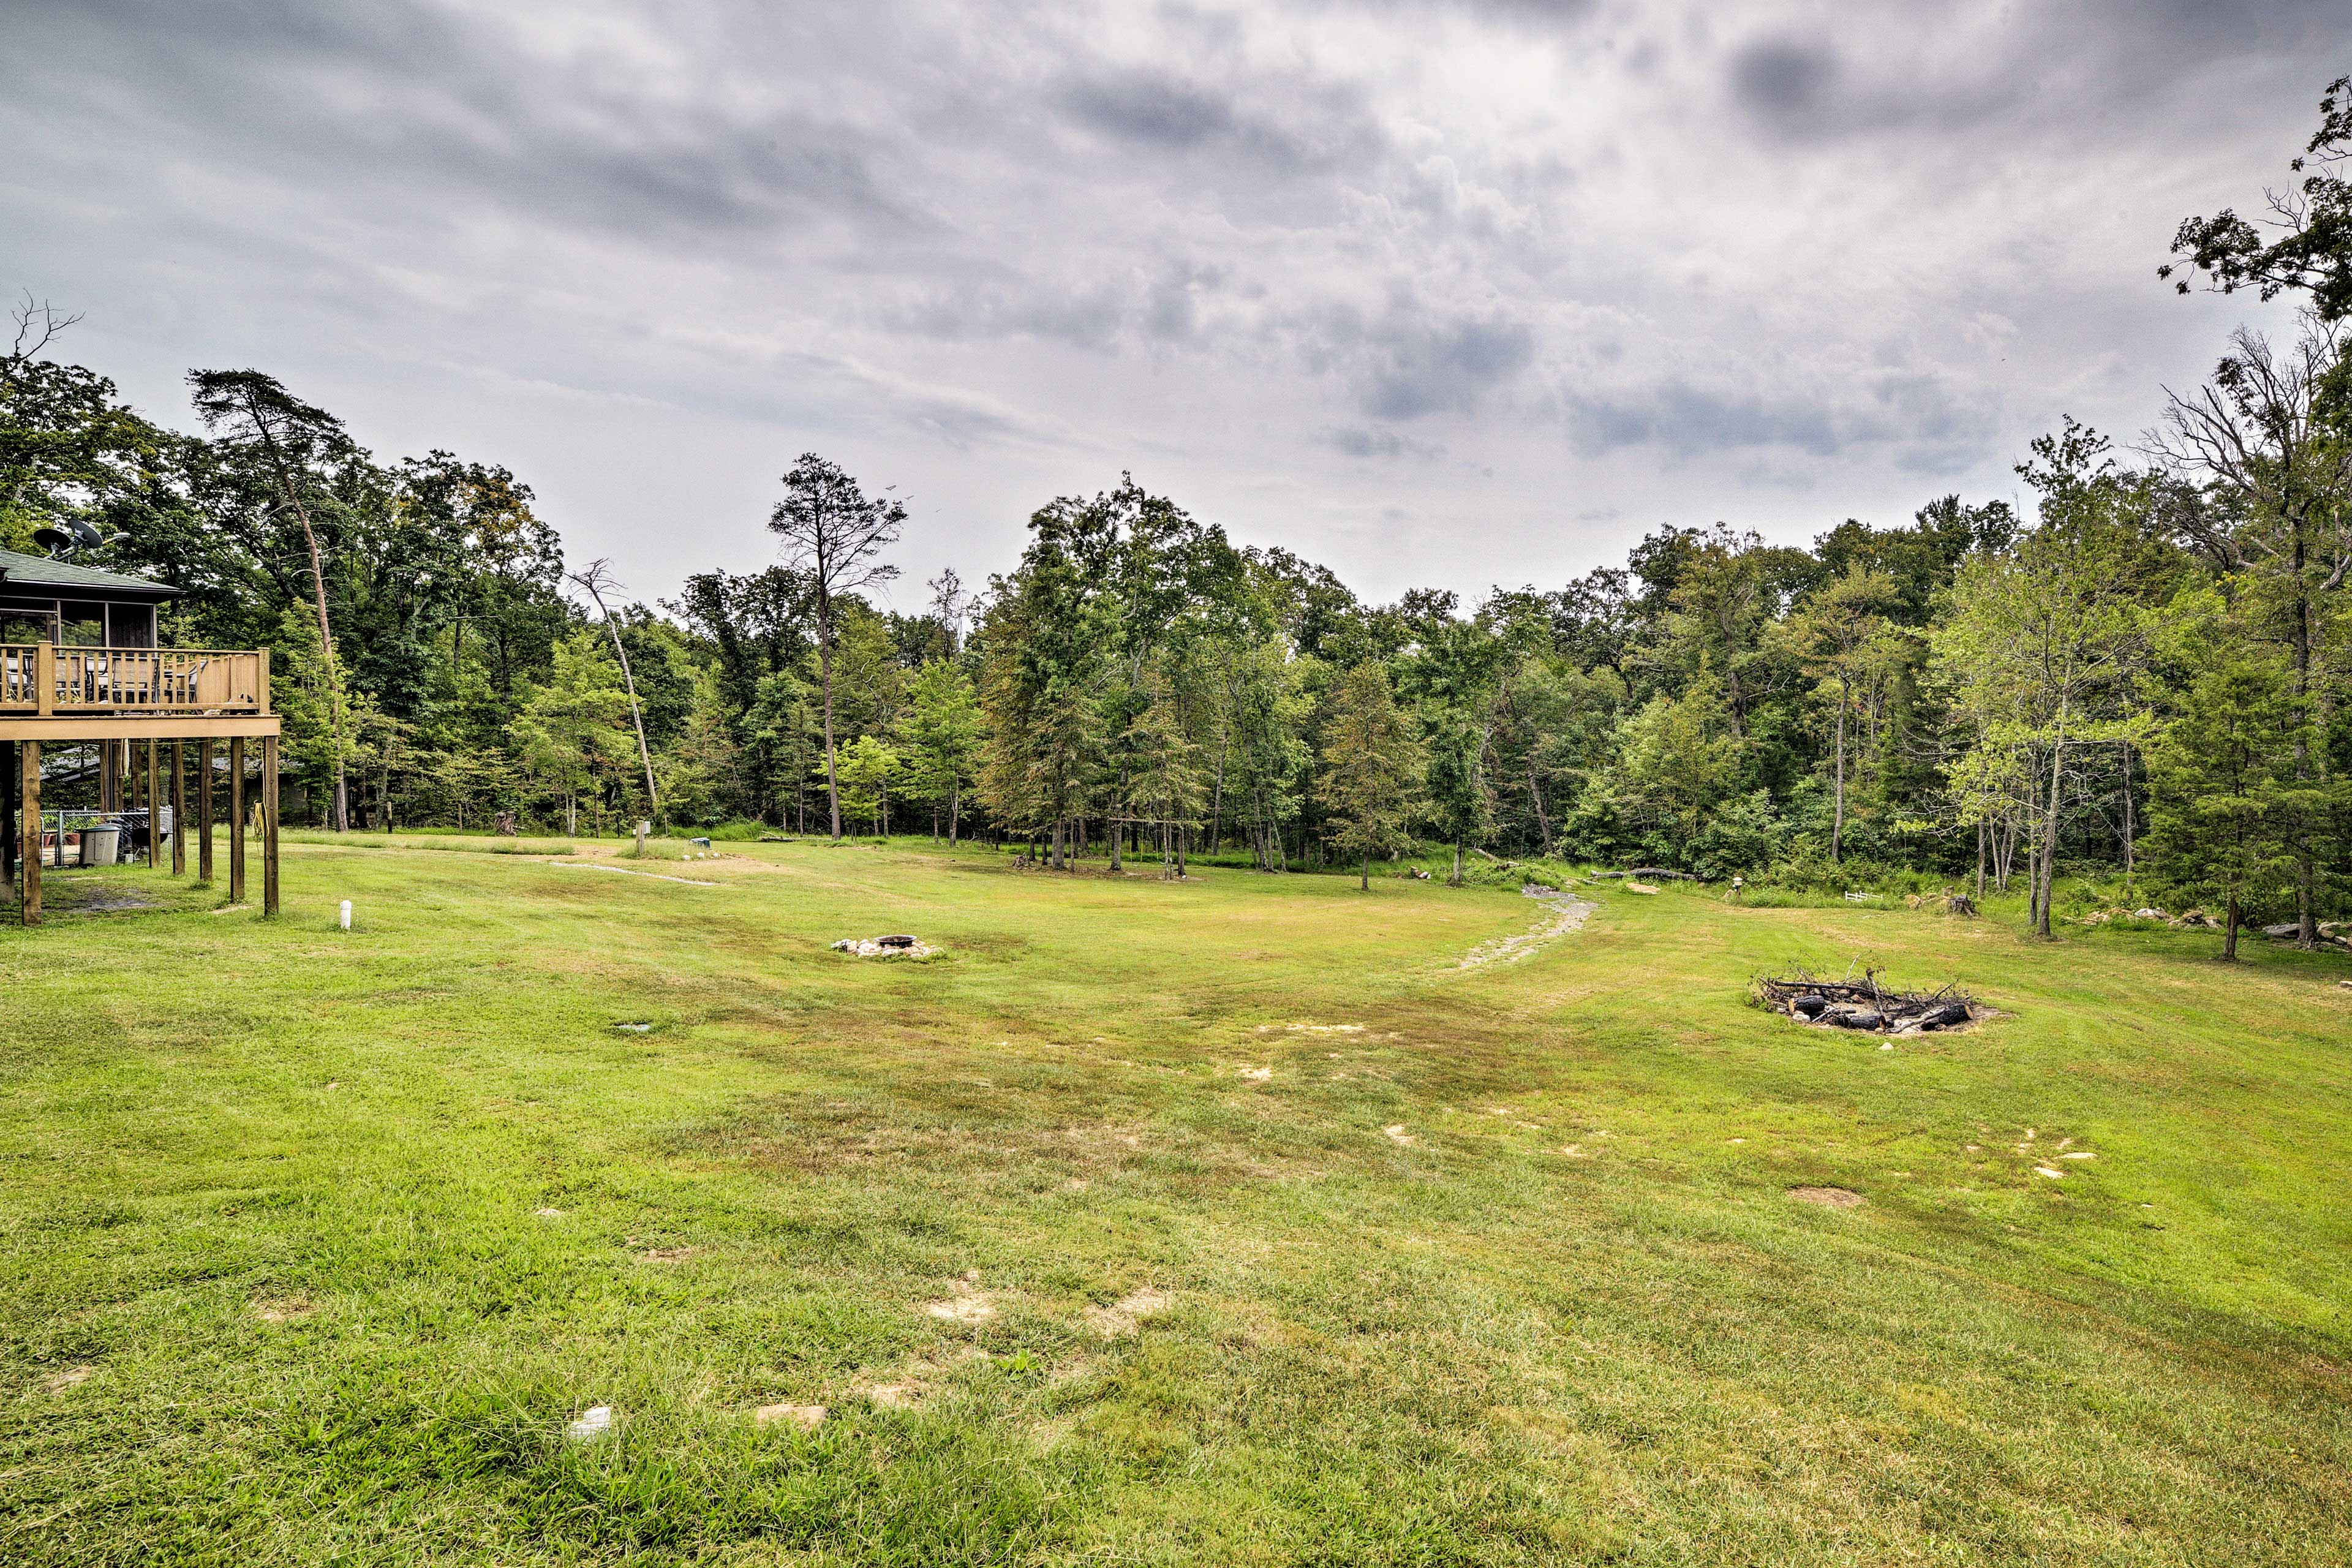 Bring your lawn games for this huge backyard!